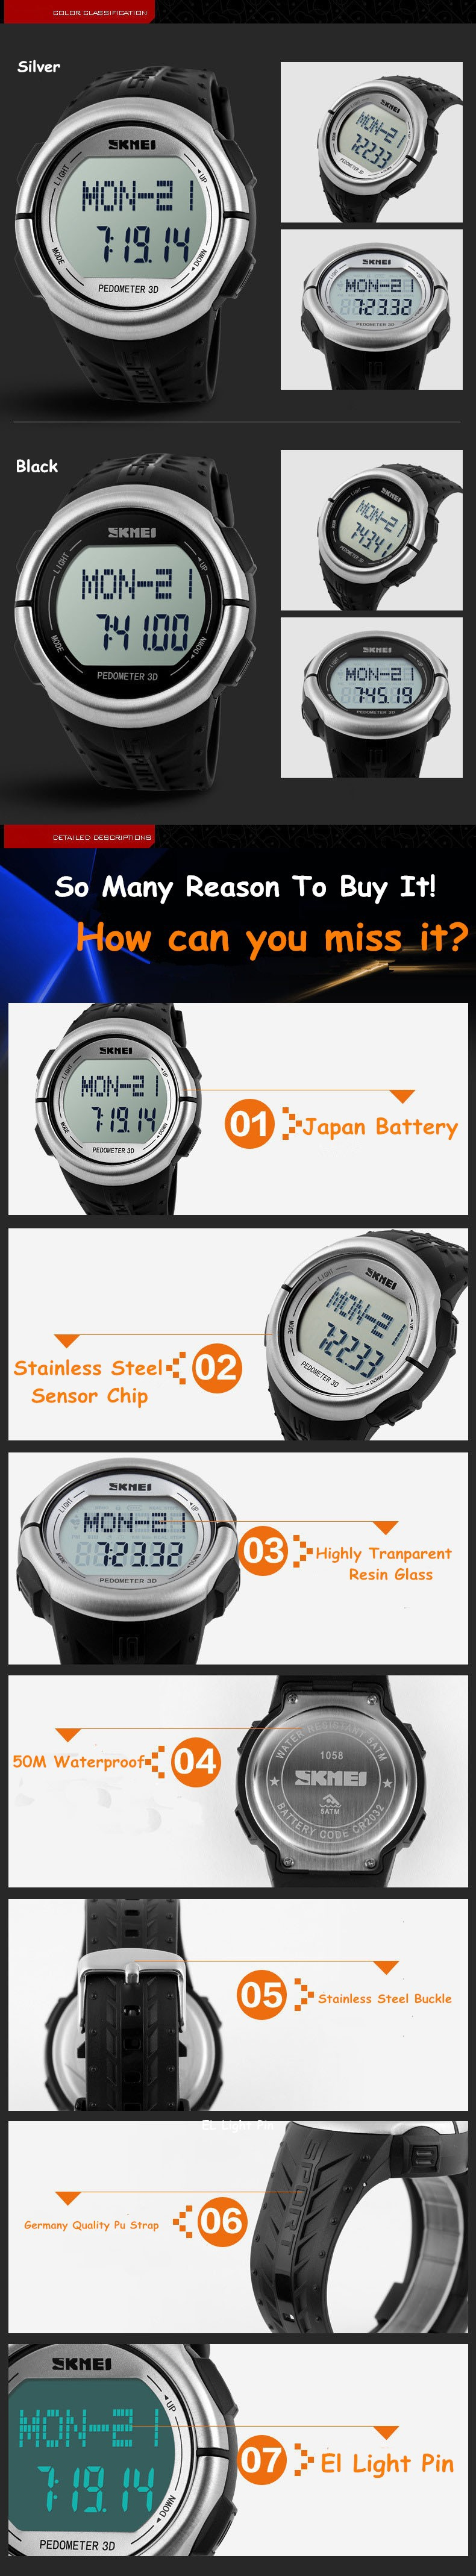 skmei sport watch 1058 5